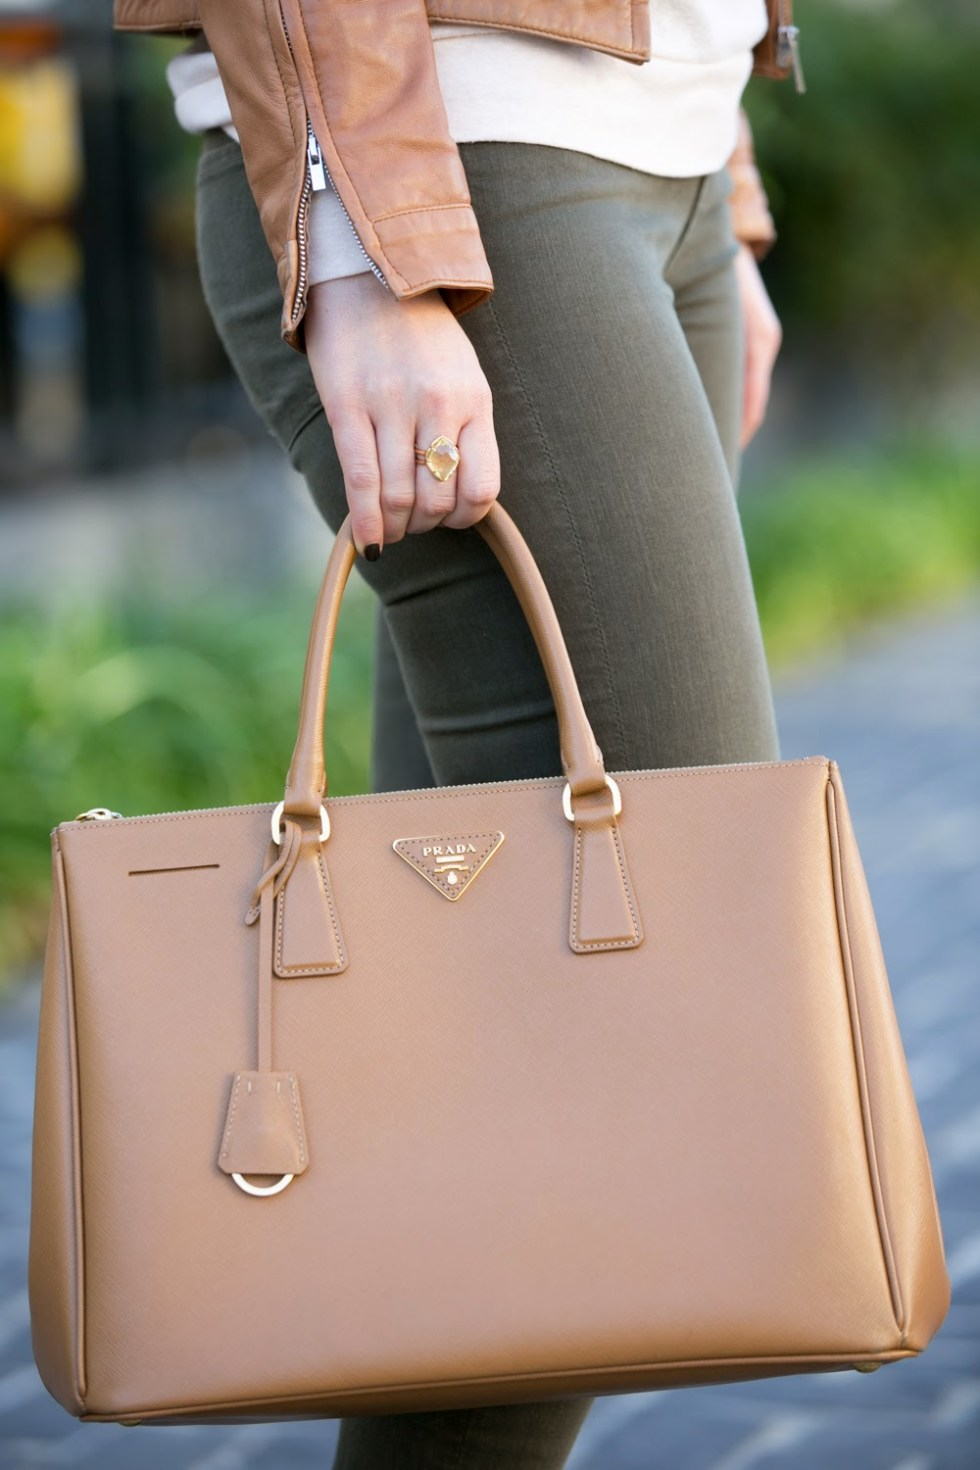 Tan Leather Bod & Christensen Jacket + Caramelo Prada Saffiano Tote Outfit